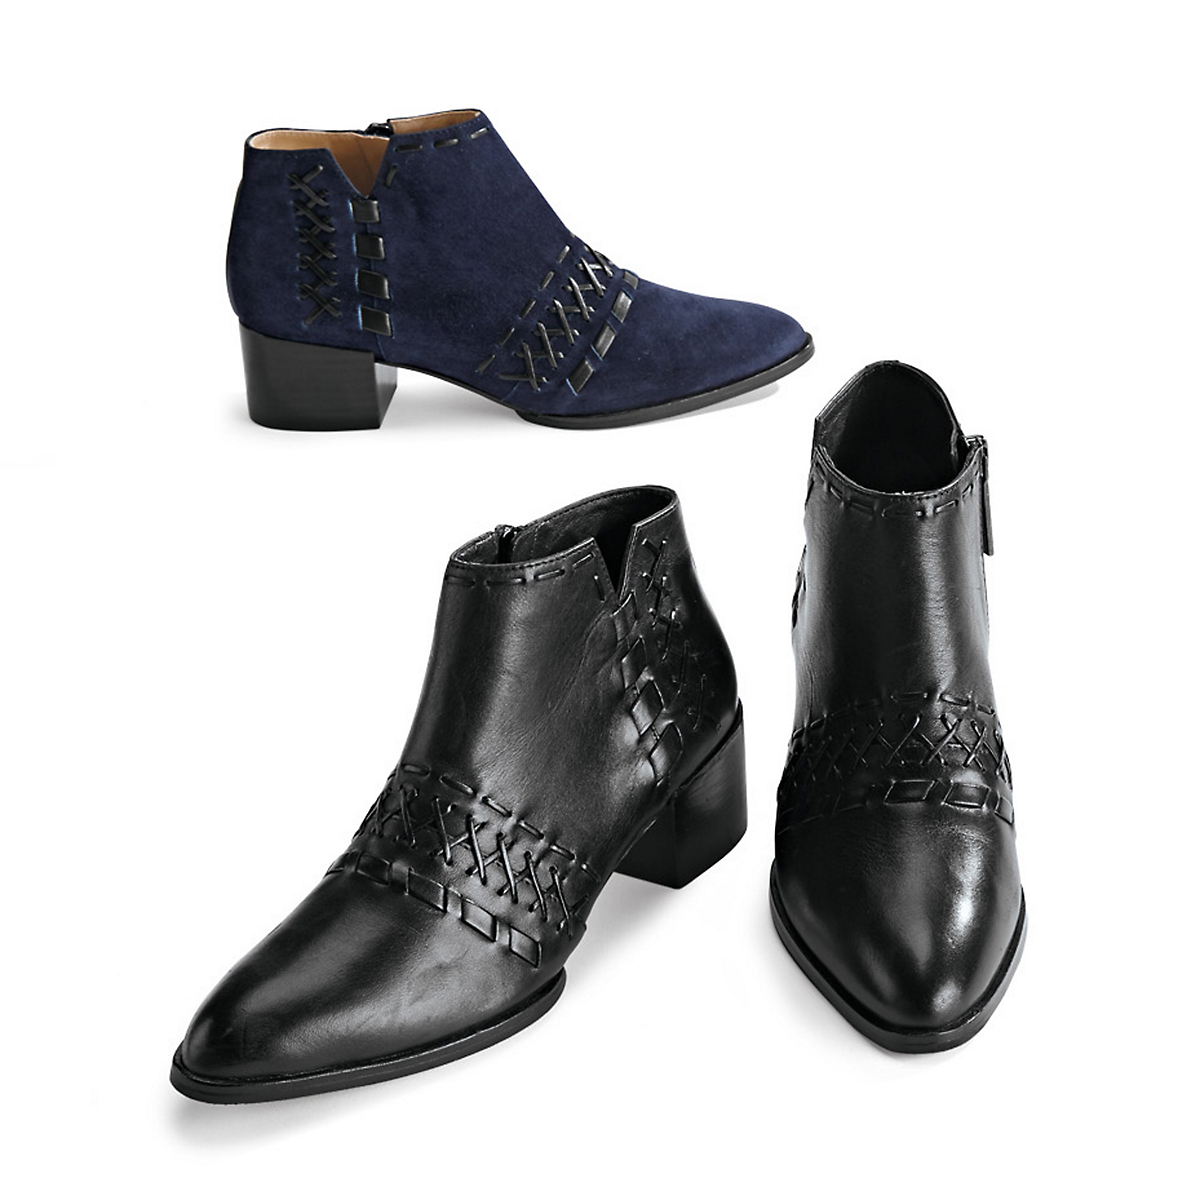 Donald J Pliner Bowery Boots